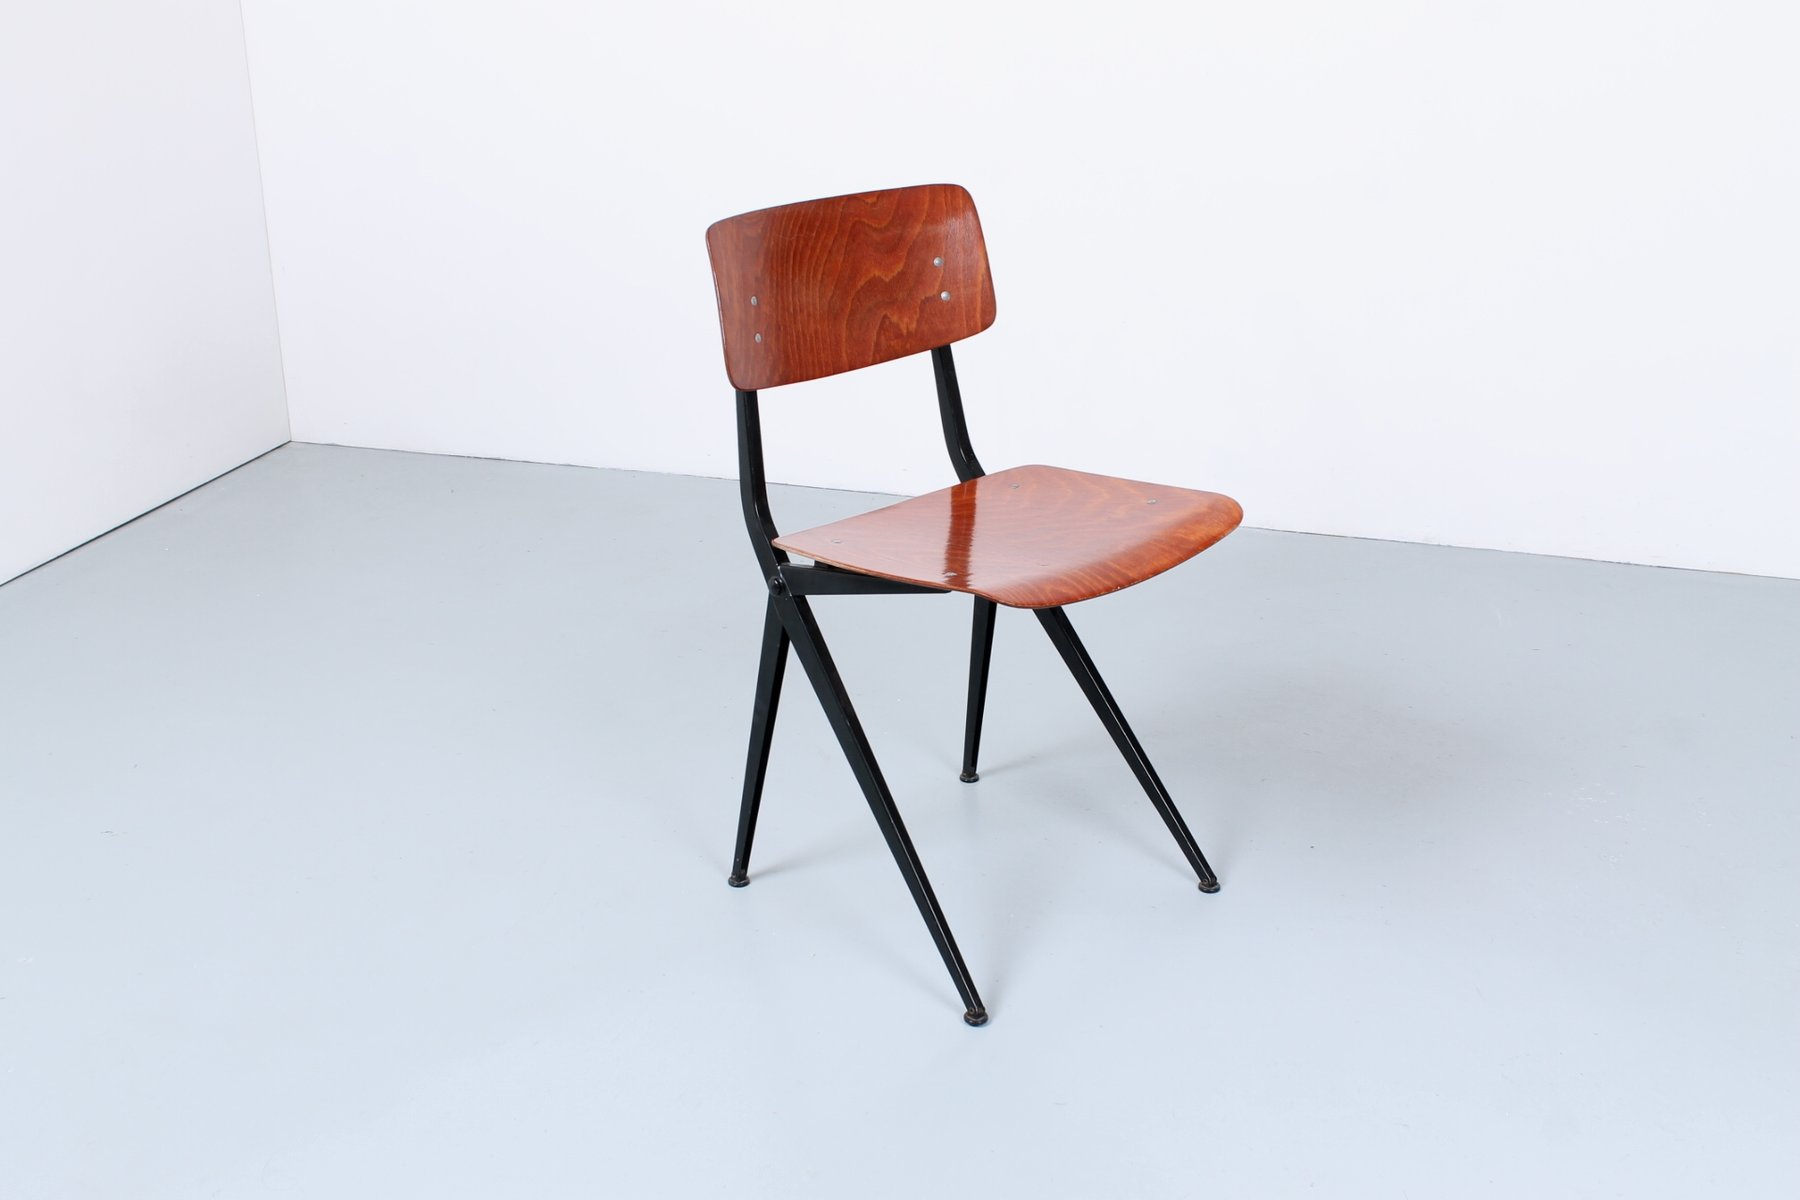 Vintage Industrial Pagwood School Chairs By Ynske Kooistra For Marko, Set  Of 6 For Sale At Pamono